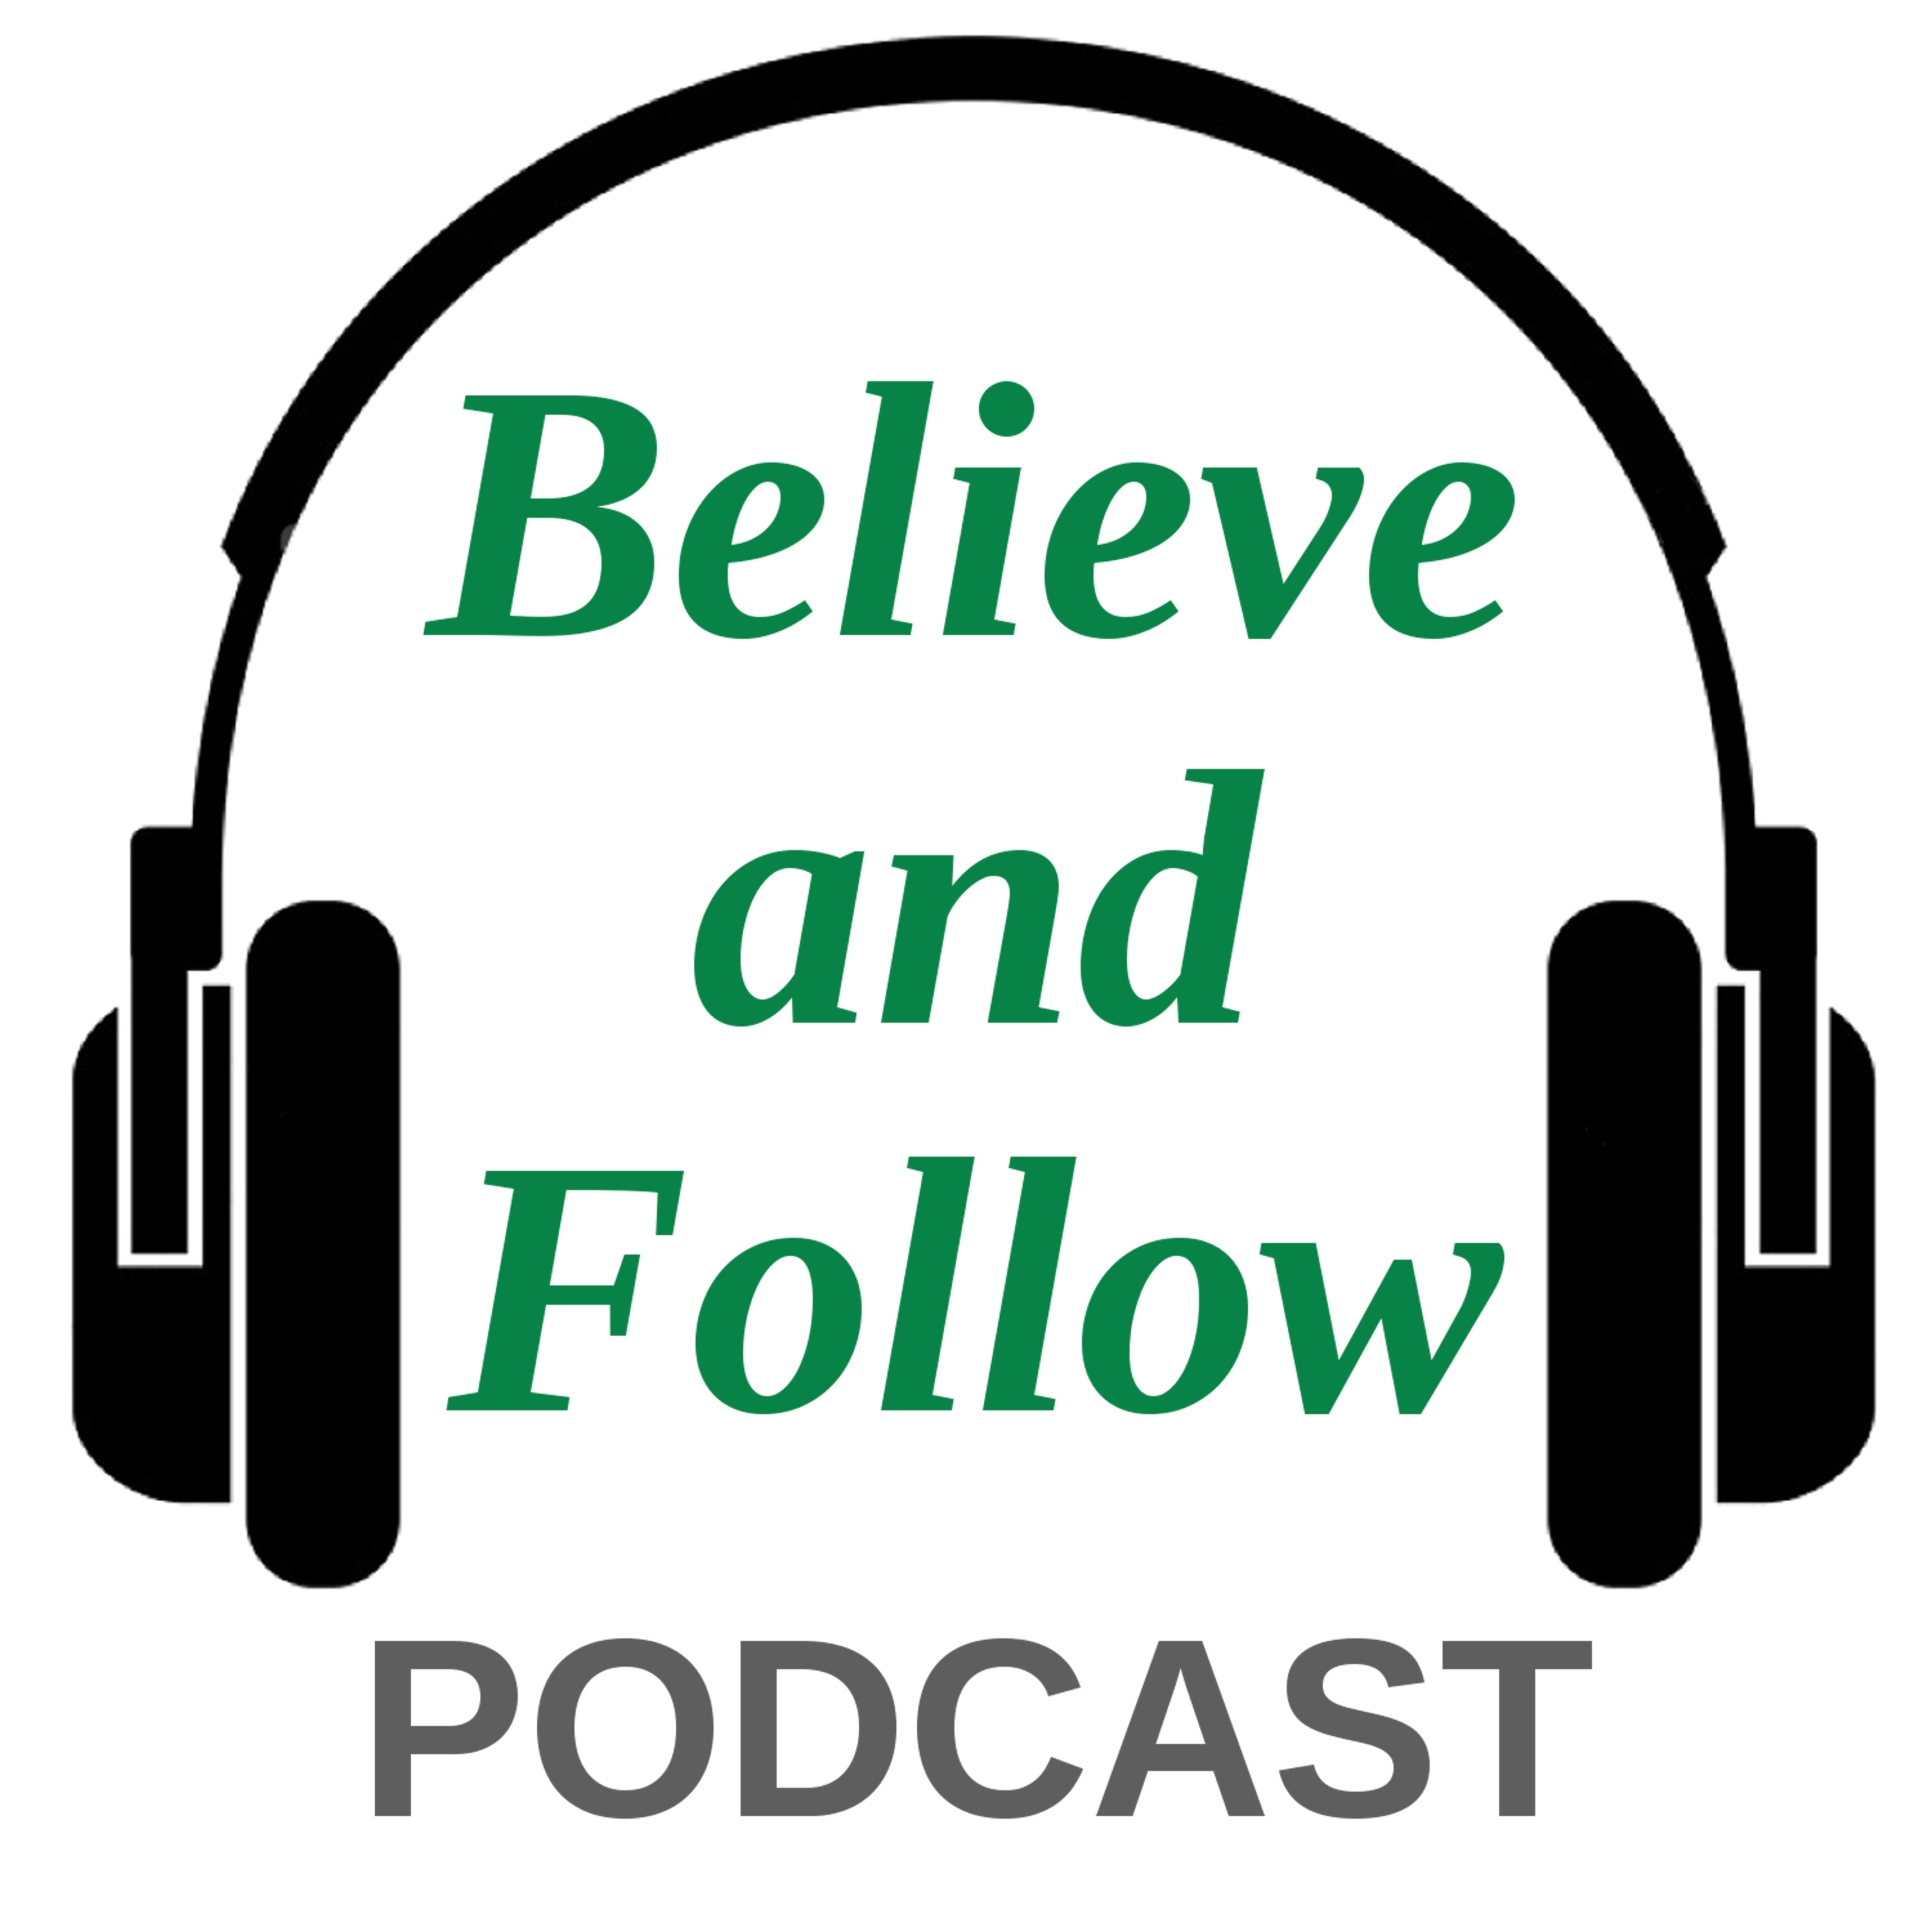 Believe and Follow Podcast